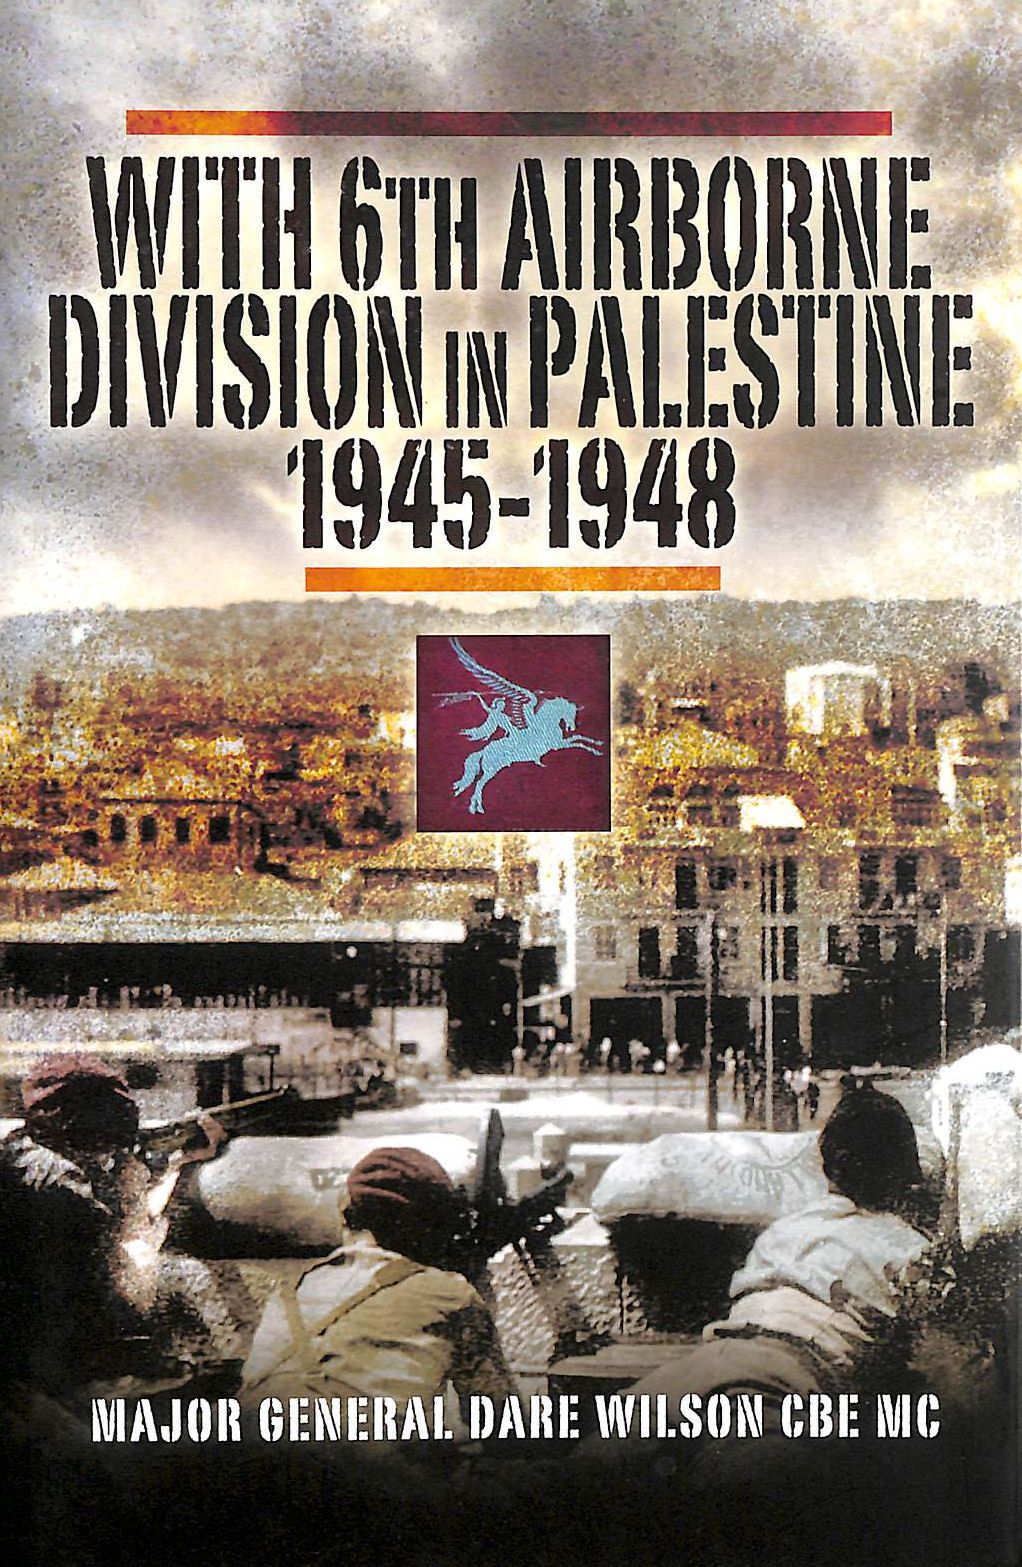 Image for With 6th Airborne Division in Palestine 1945-48